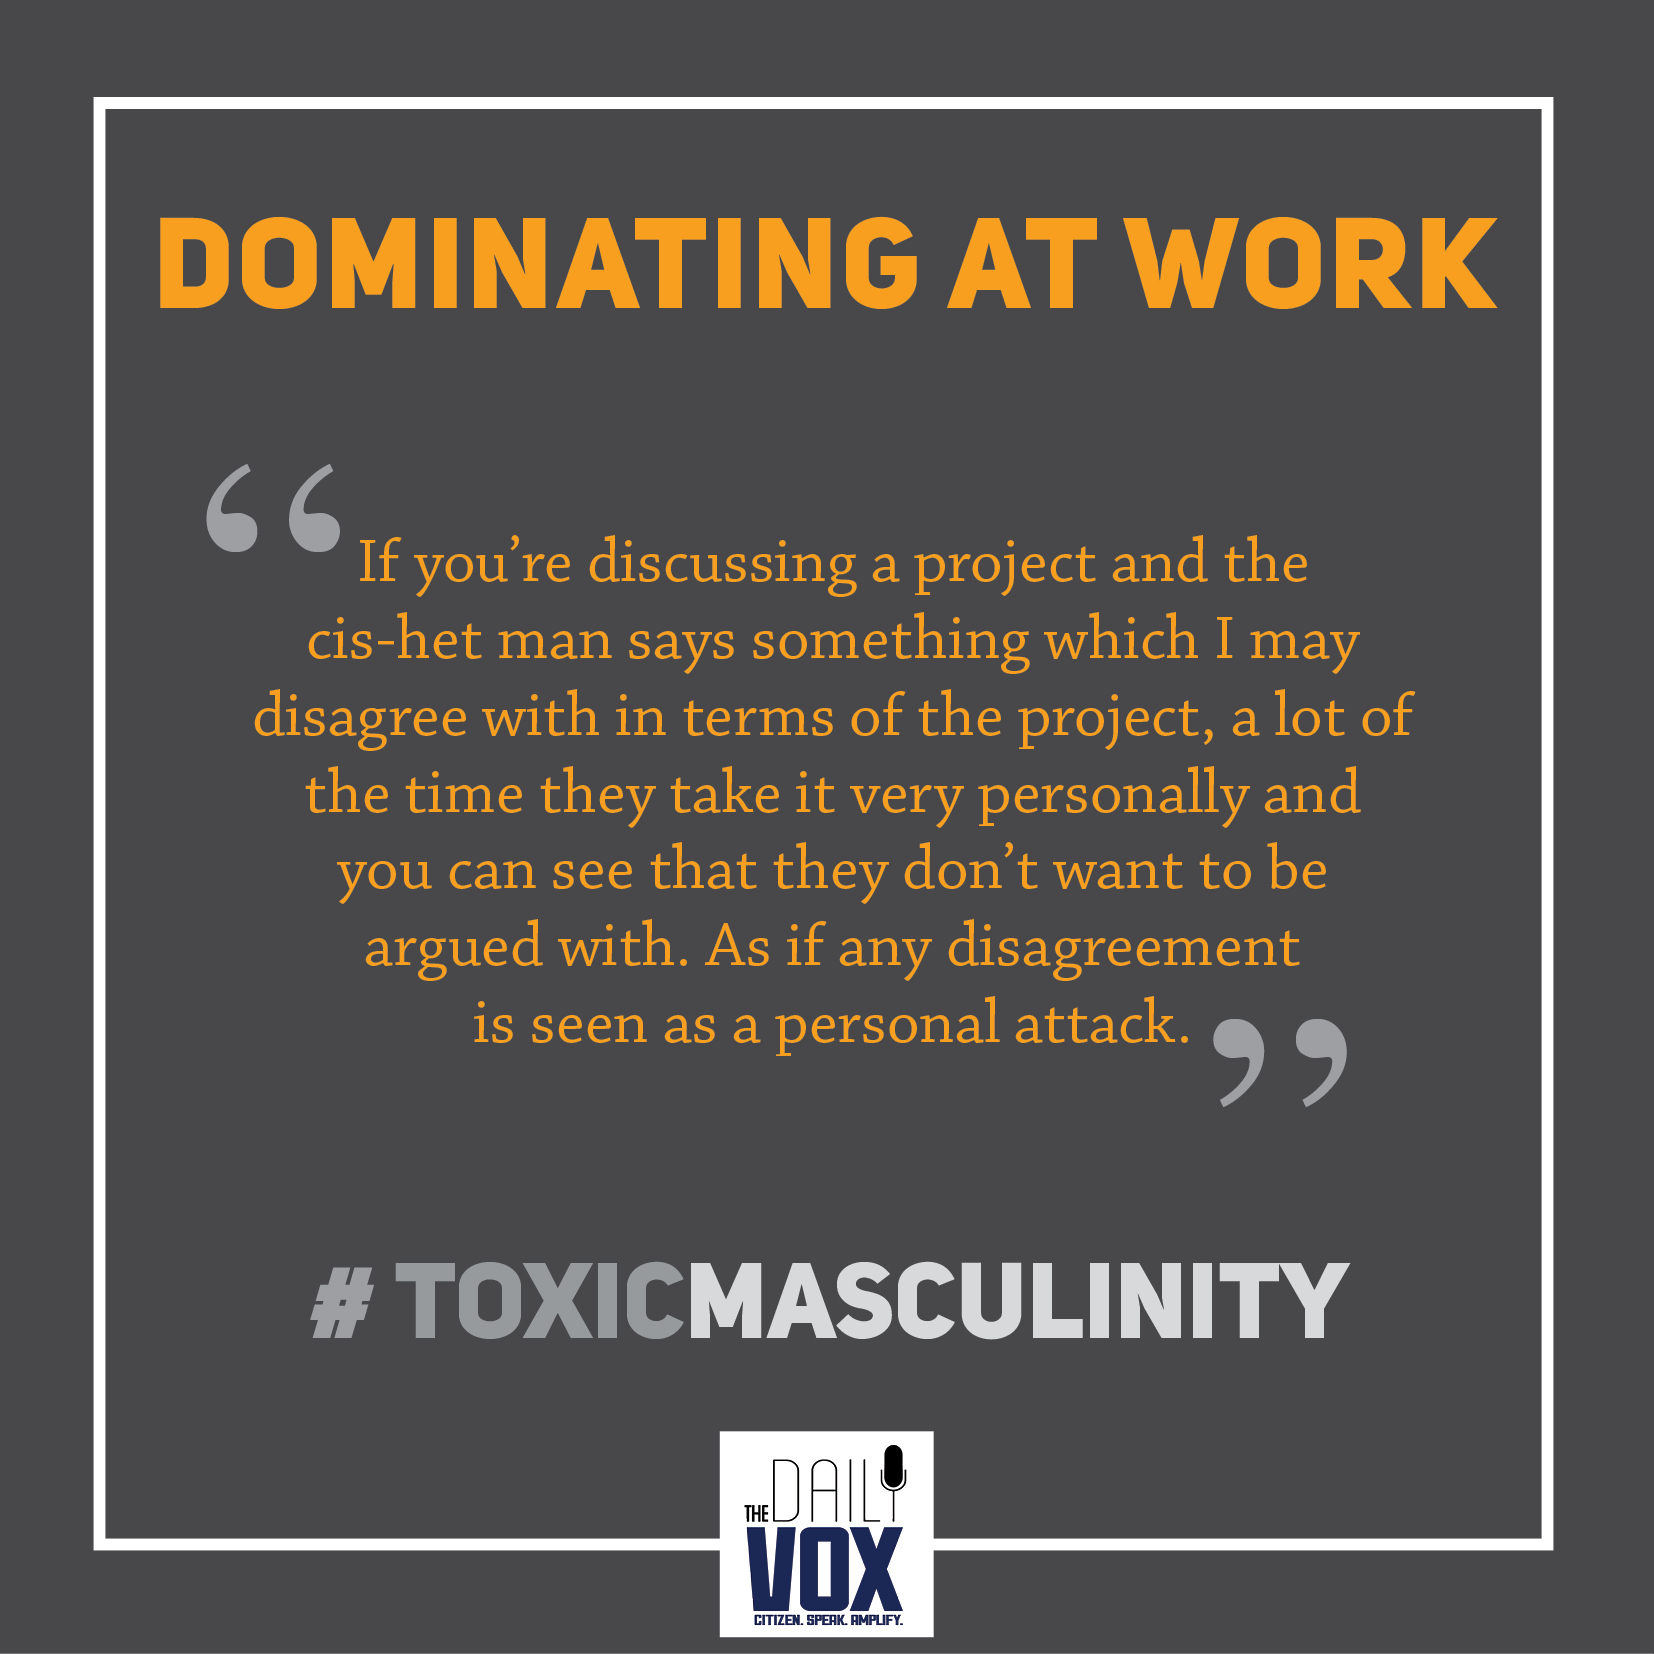 toxic masculinity dominating at work sexism